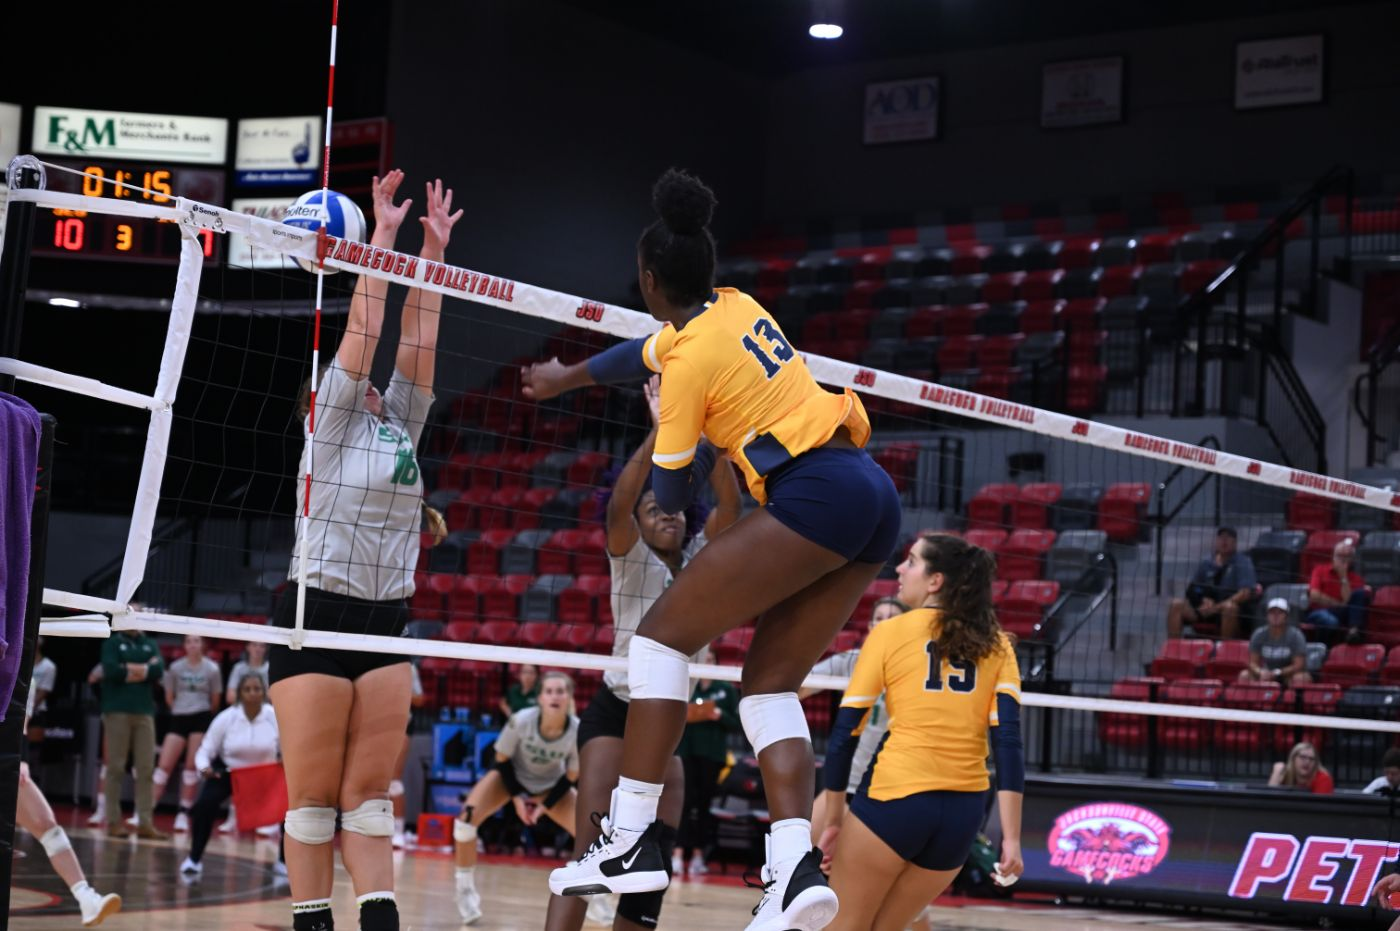 ETSU Logs First Conference Win With 3-1 Victory Over Furman